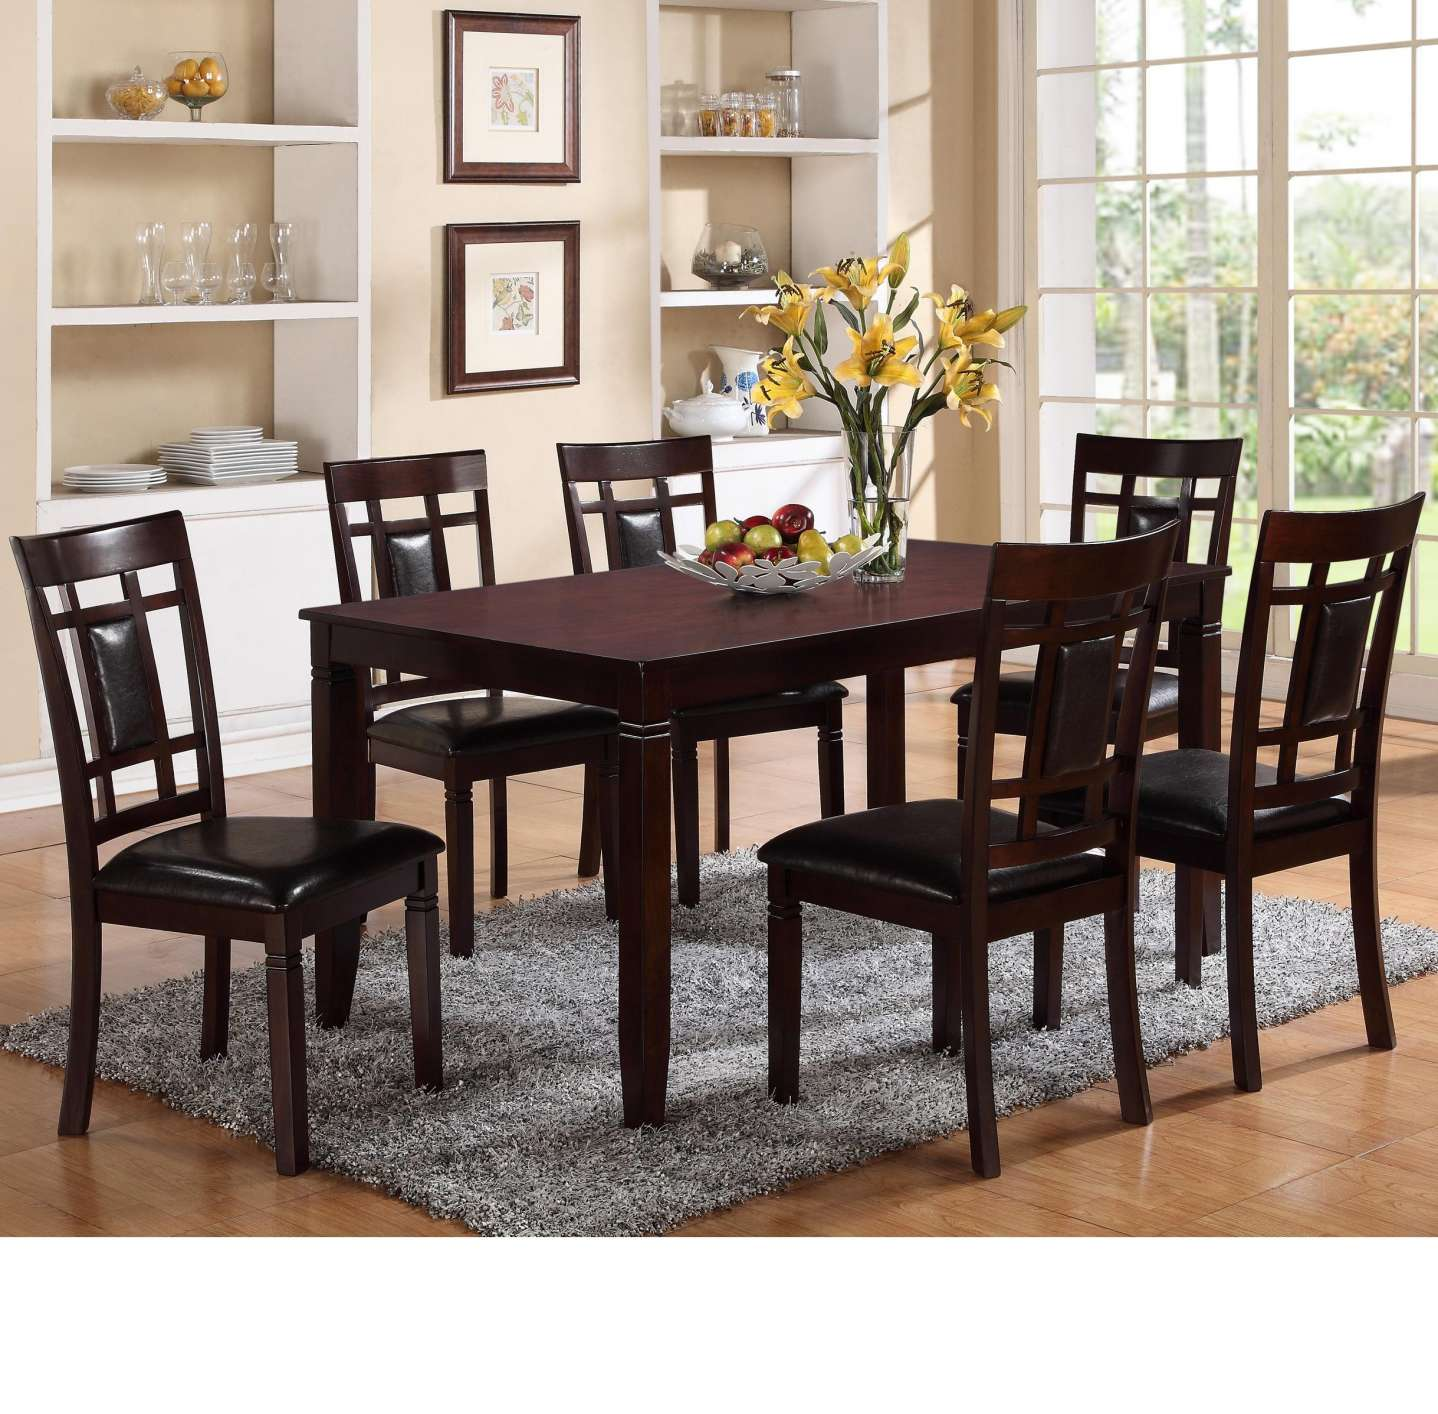 dining room accent pieces also small wall decor ideas meilleur scpi crown mark paige piece table and chair set with block feets home design cloth placemats grey patio furniture